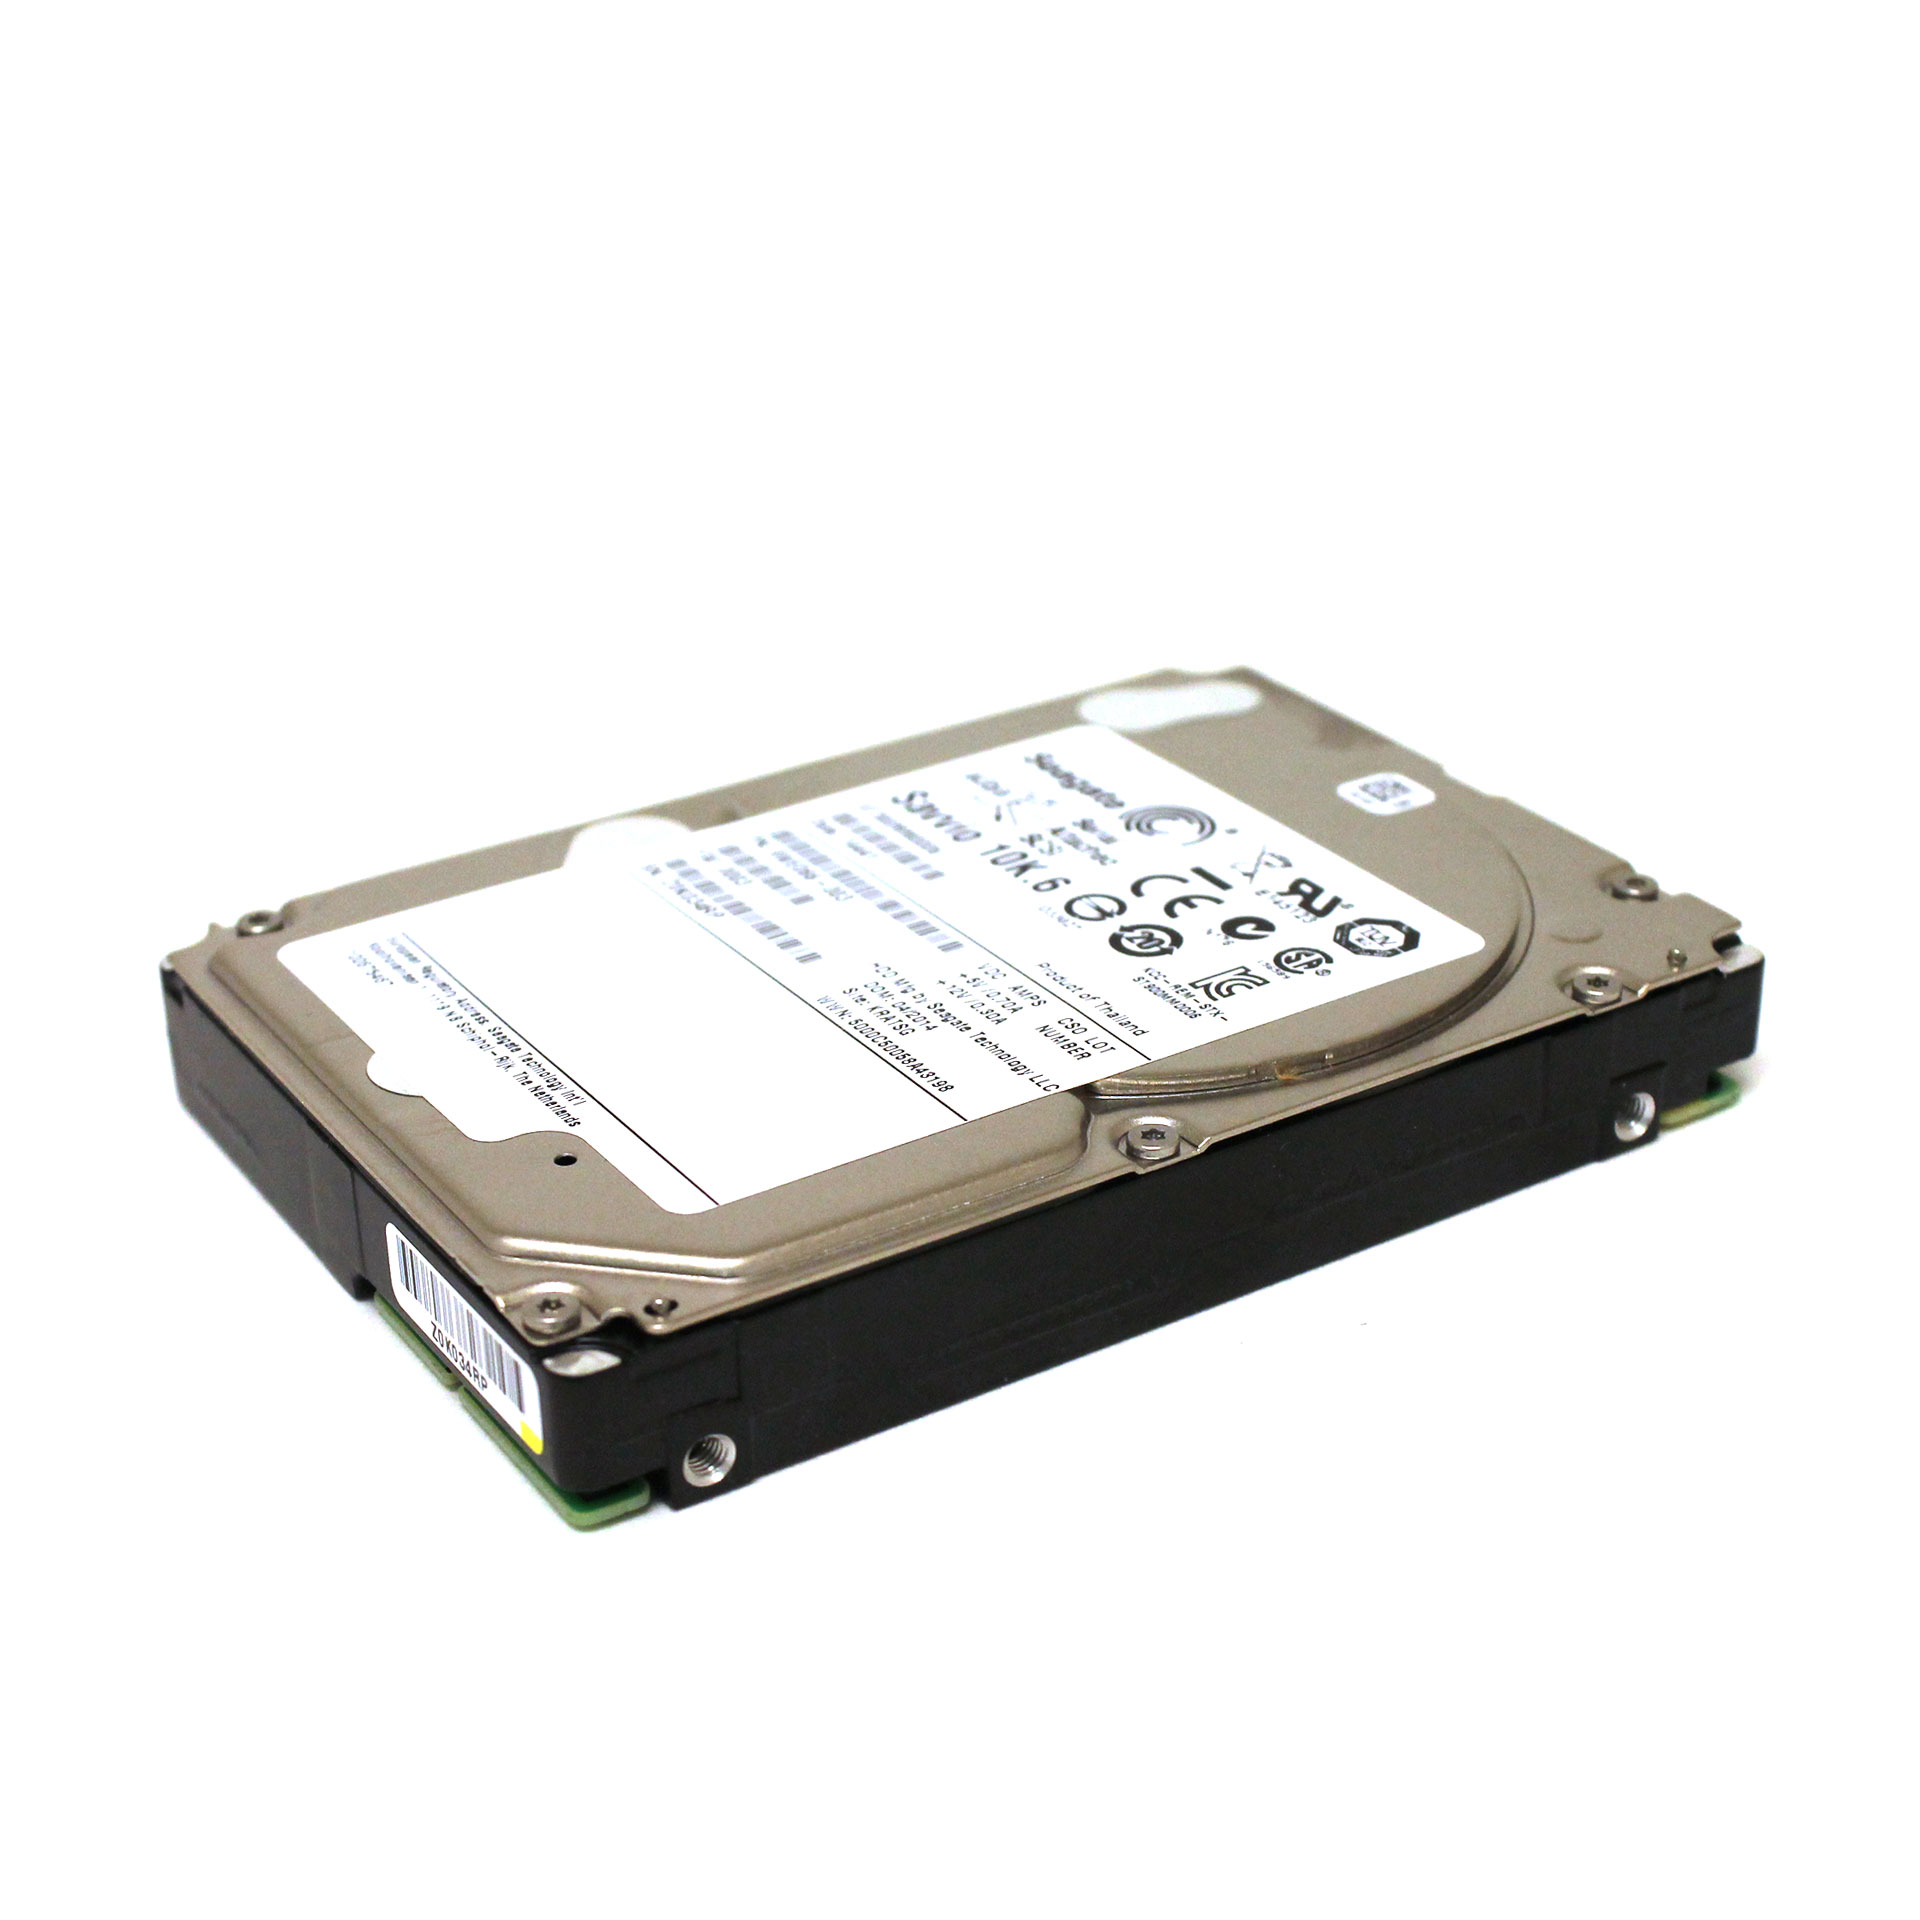 Seagate Savvio 10K.6 HDD 300GB Enterprise Performance SAS 6Gb/s